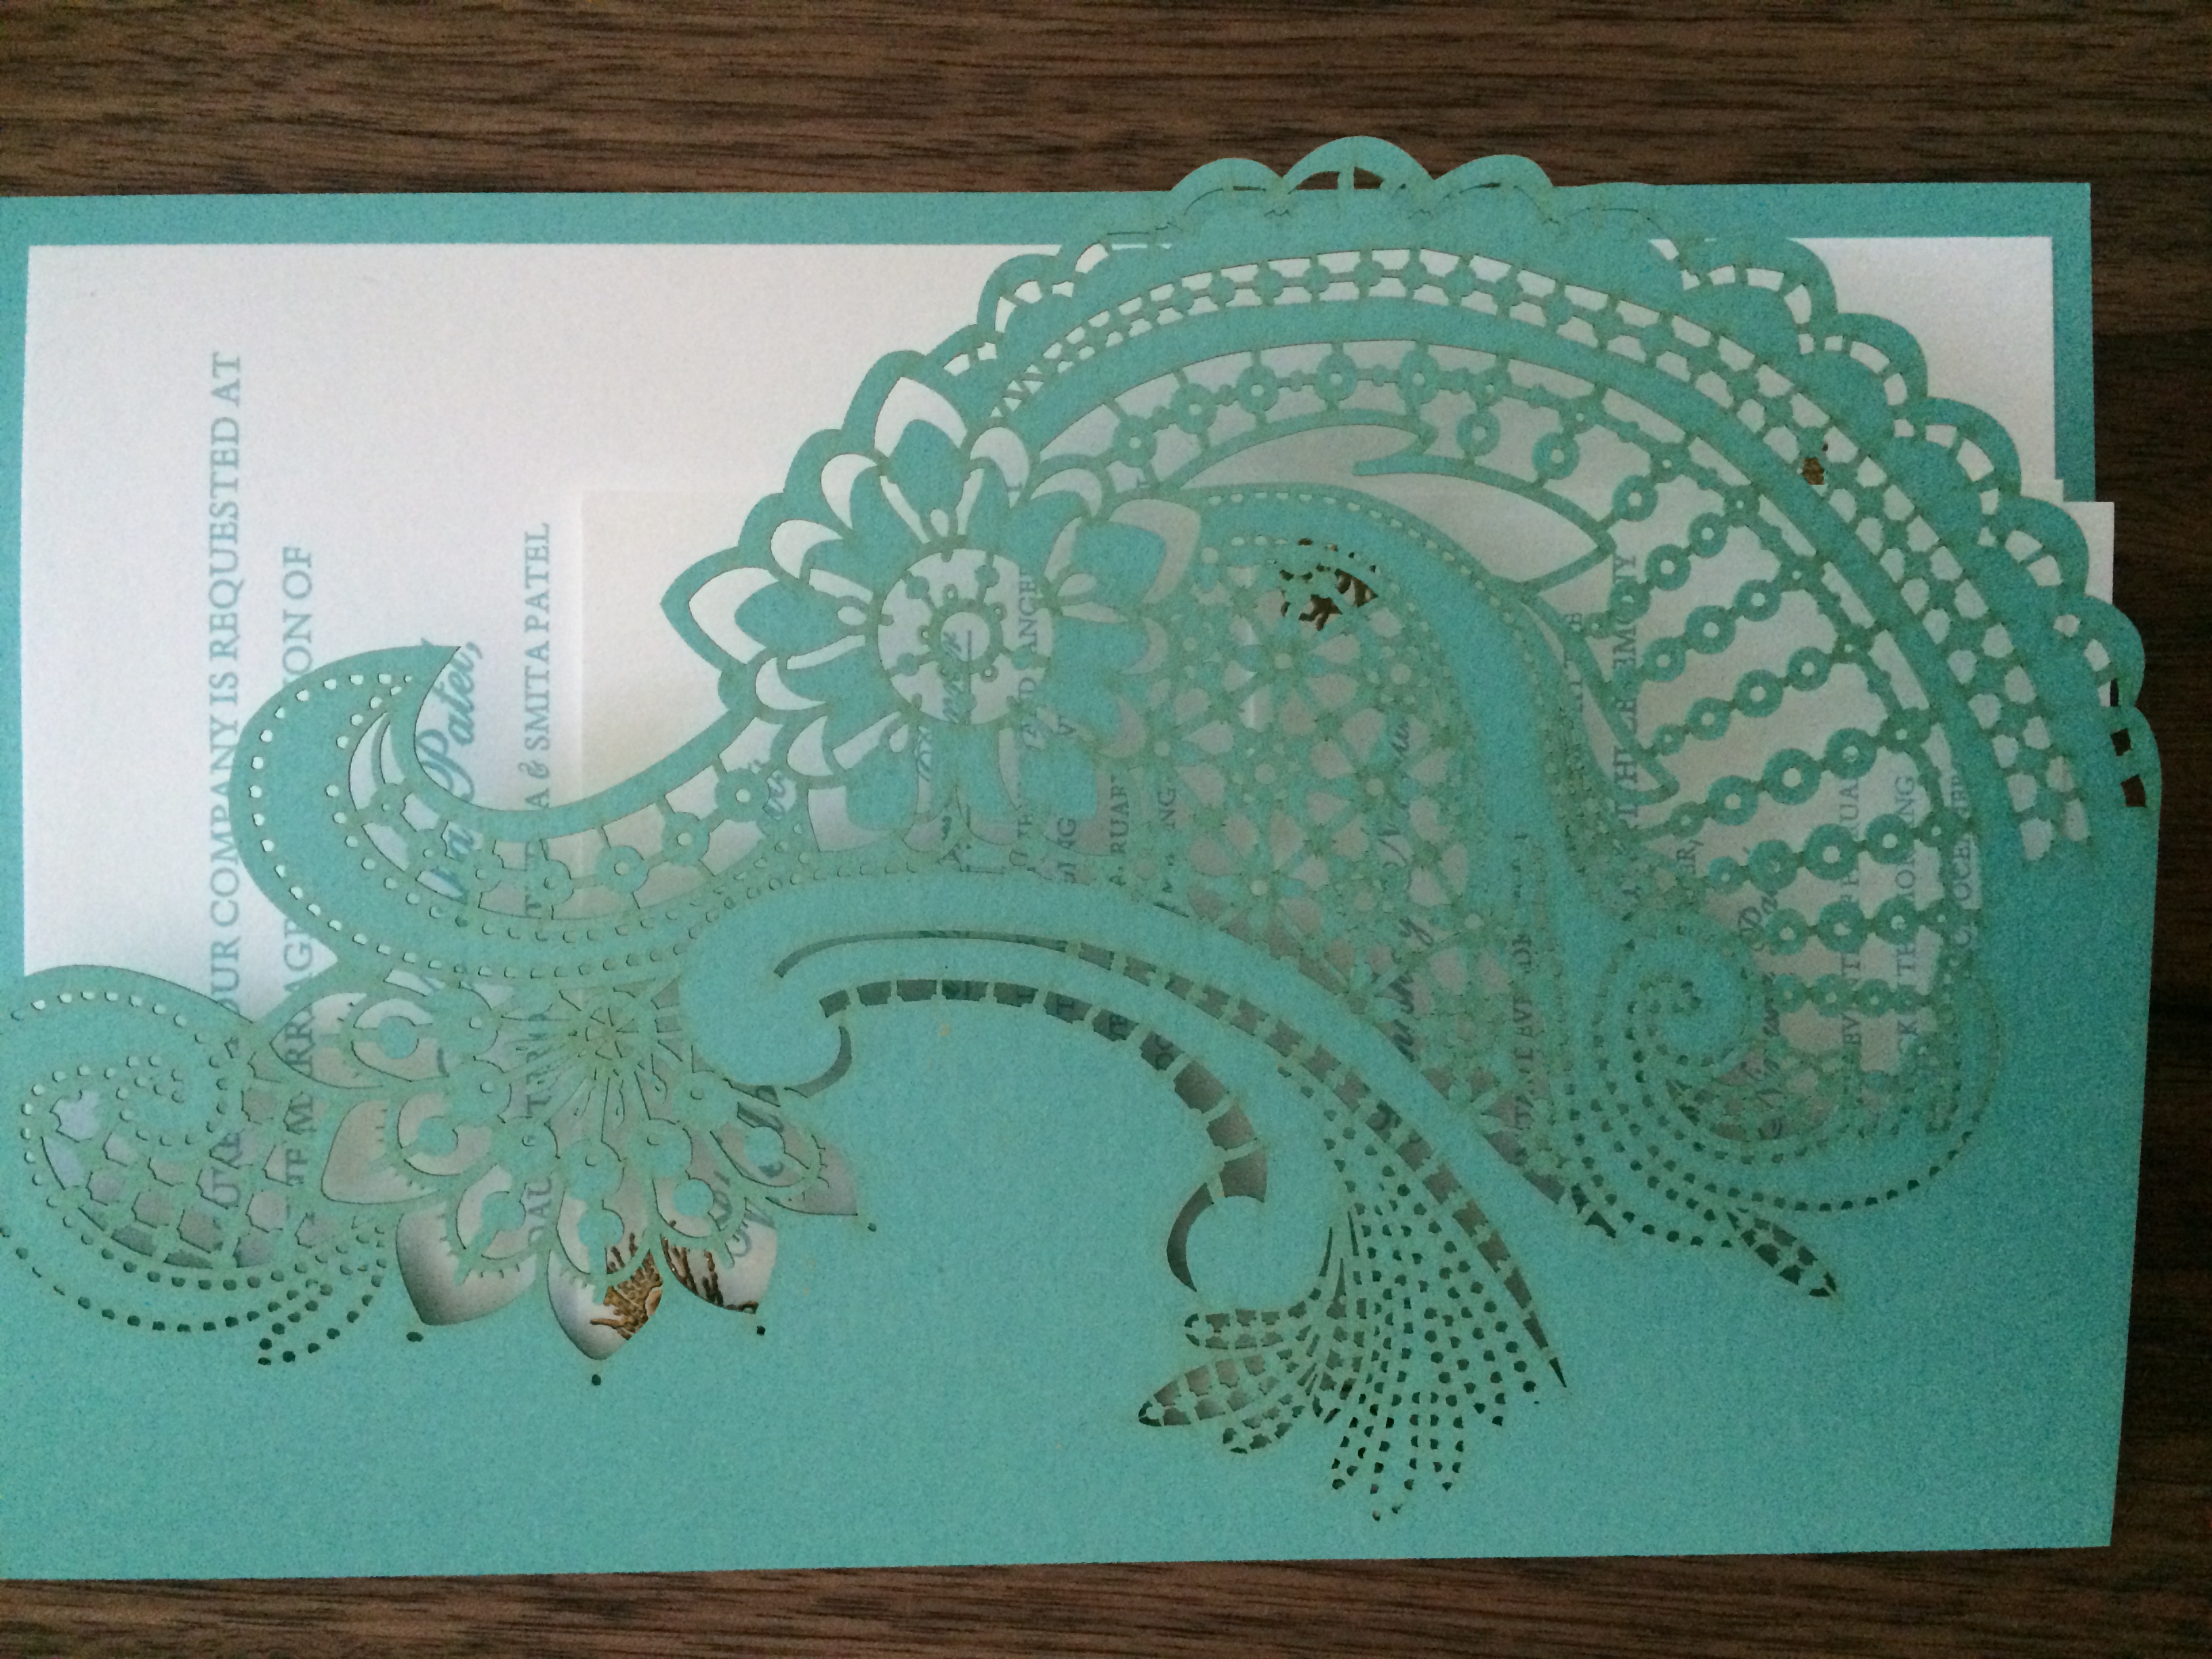 diy cultural wedding invitation wedding invitation stamps Stamps stamps and more stamps the rubber kind Stamps can add subtle touches of culture to your invitations such as peacocks and feathers or for an